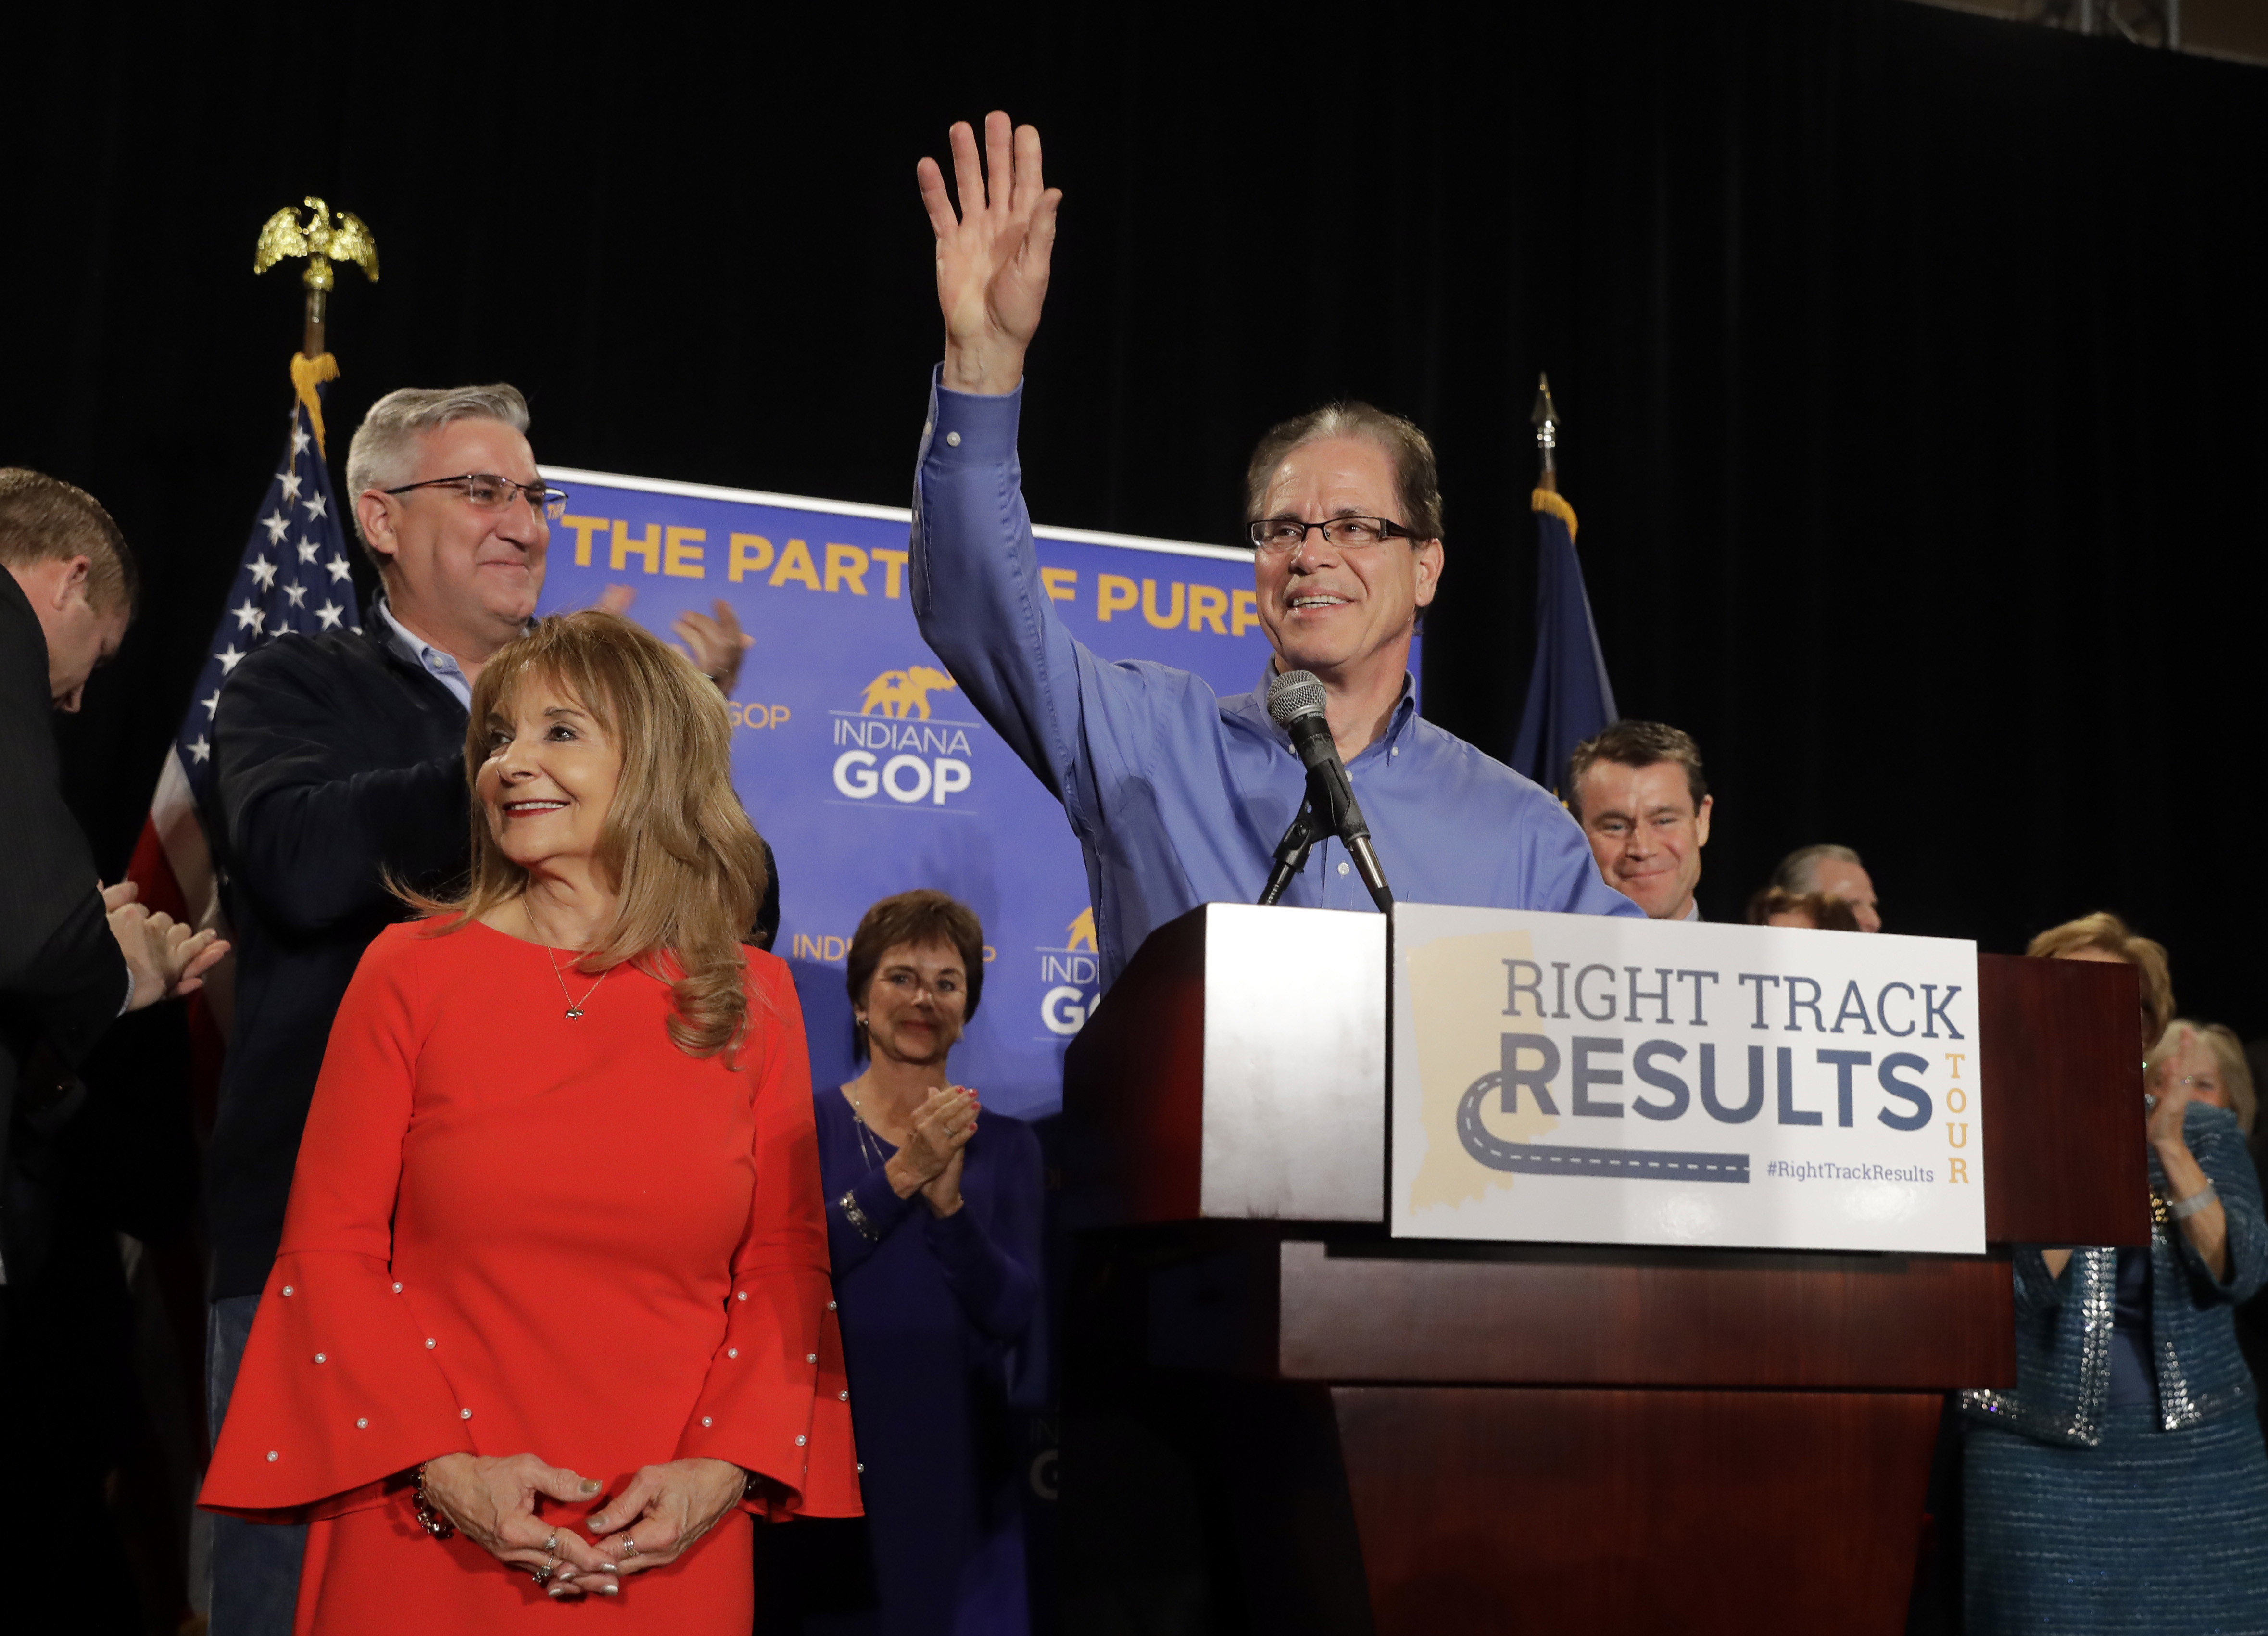 Republican Mike Braun celebrates with his wife, Maureen, during an election night party, Tuesday, Nov. 6, 2018, in Indianapolis. Braun defeated Sen. Joe Donnelly, D-Ind. (AP Photo/Darron Cummings)